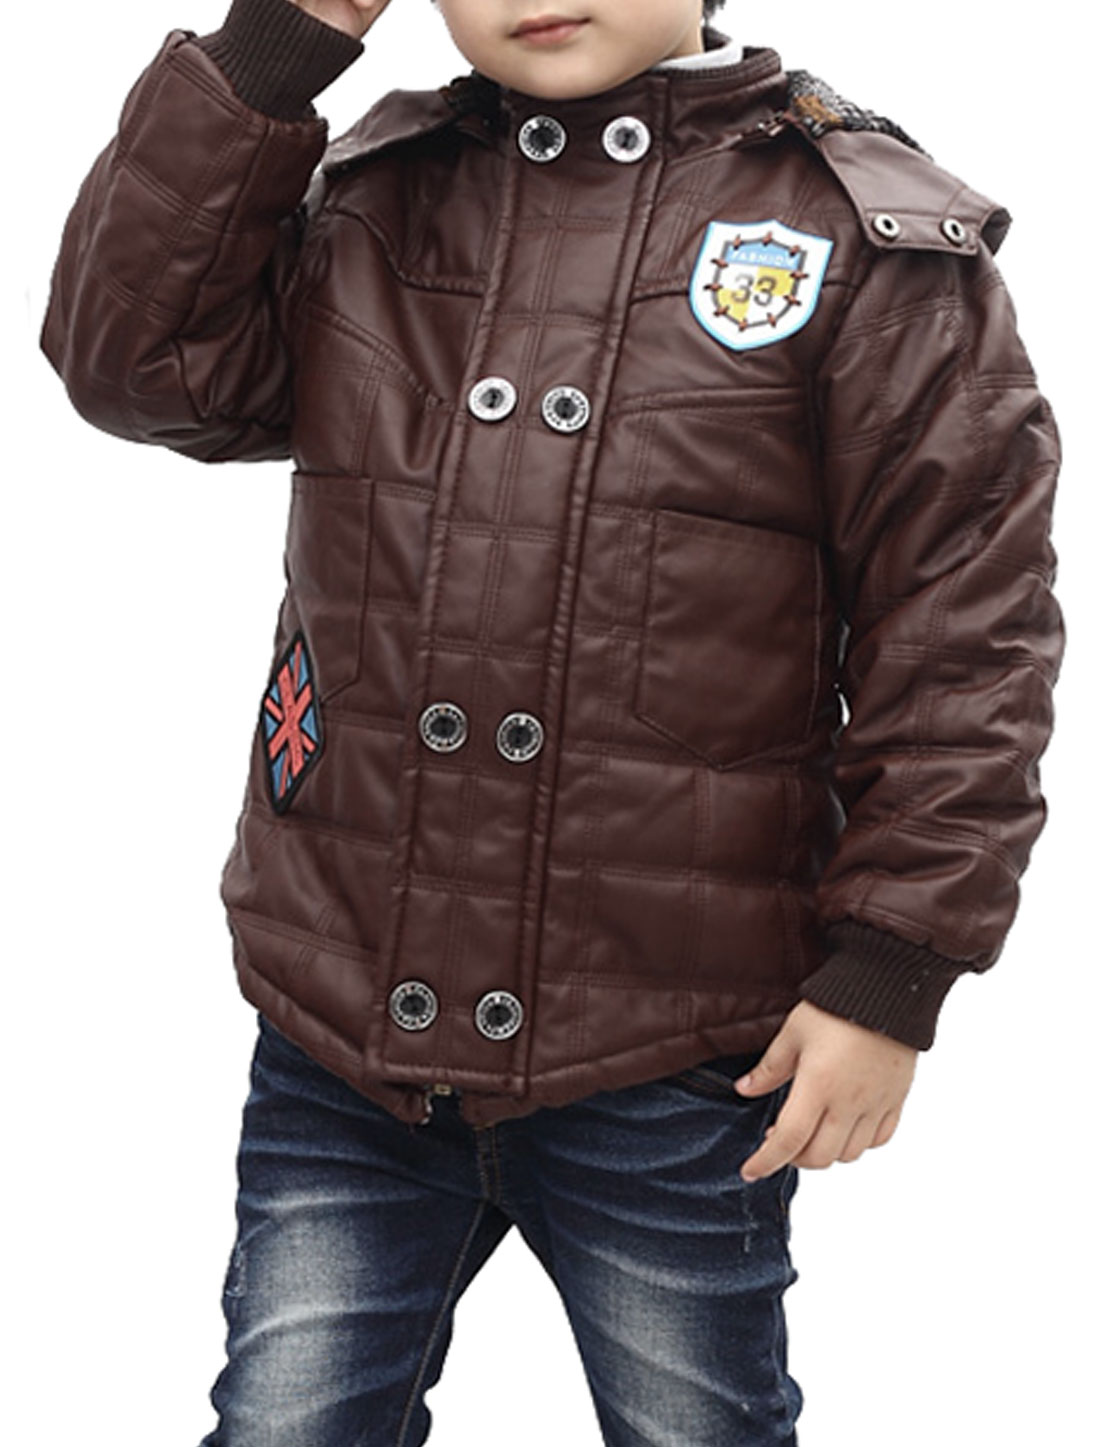 Chic Dark Brown Long Sleeve Fleece Lined Faux Leather Jacket for Boys 7